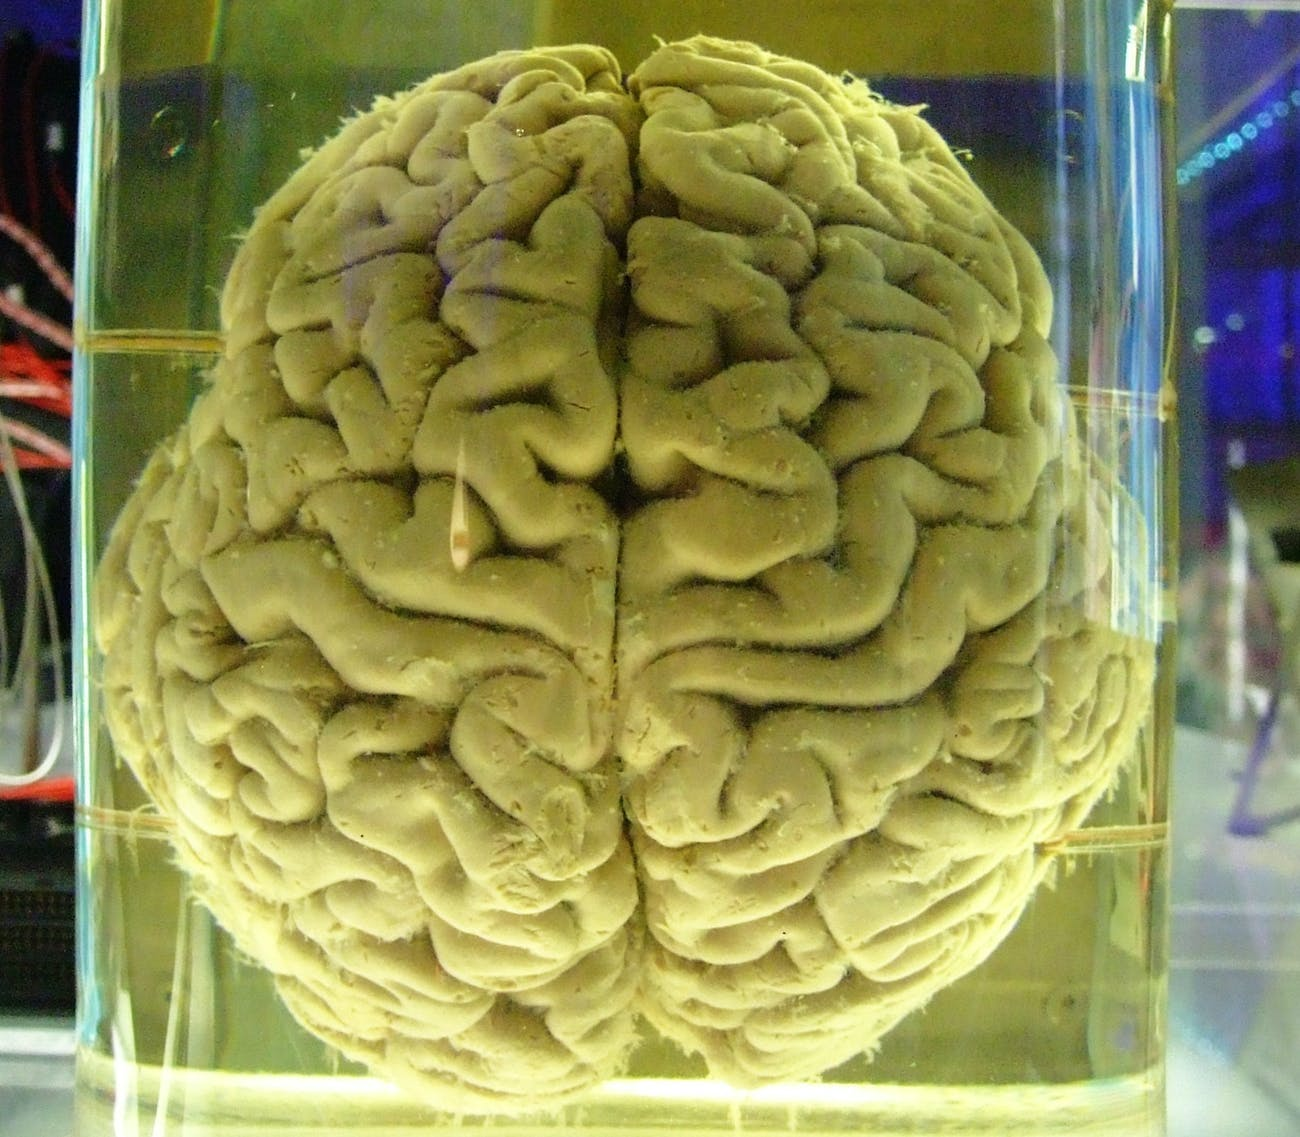 A real-life human brain, not Sally from 'Pacific Rim Uprising'.